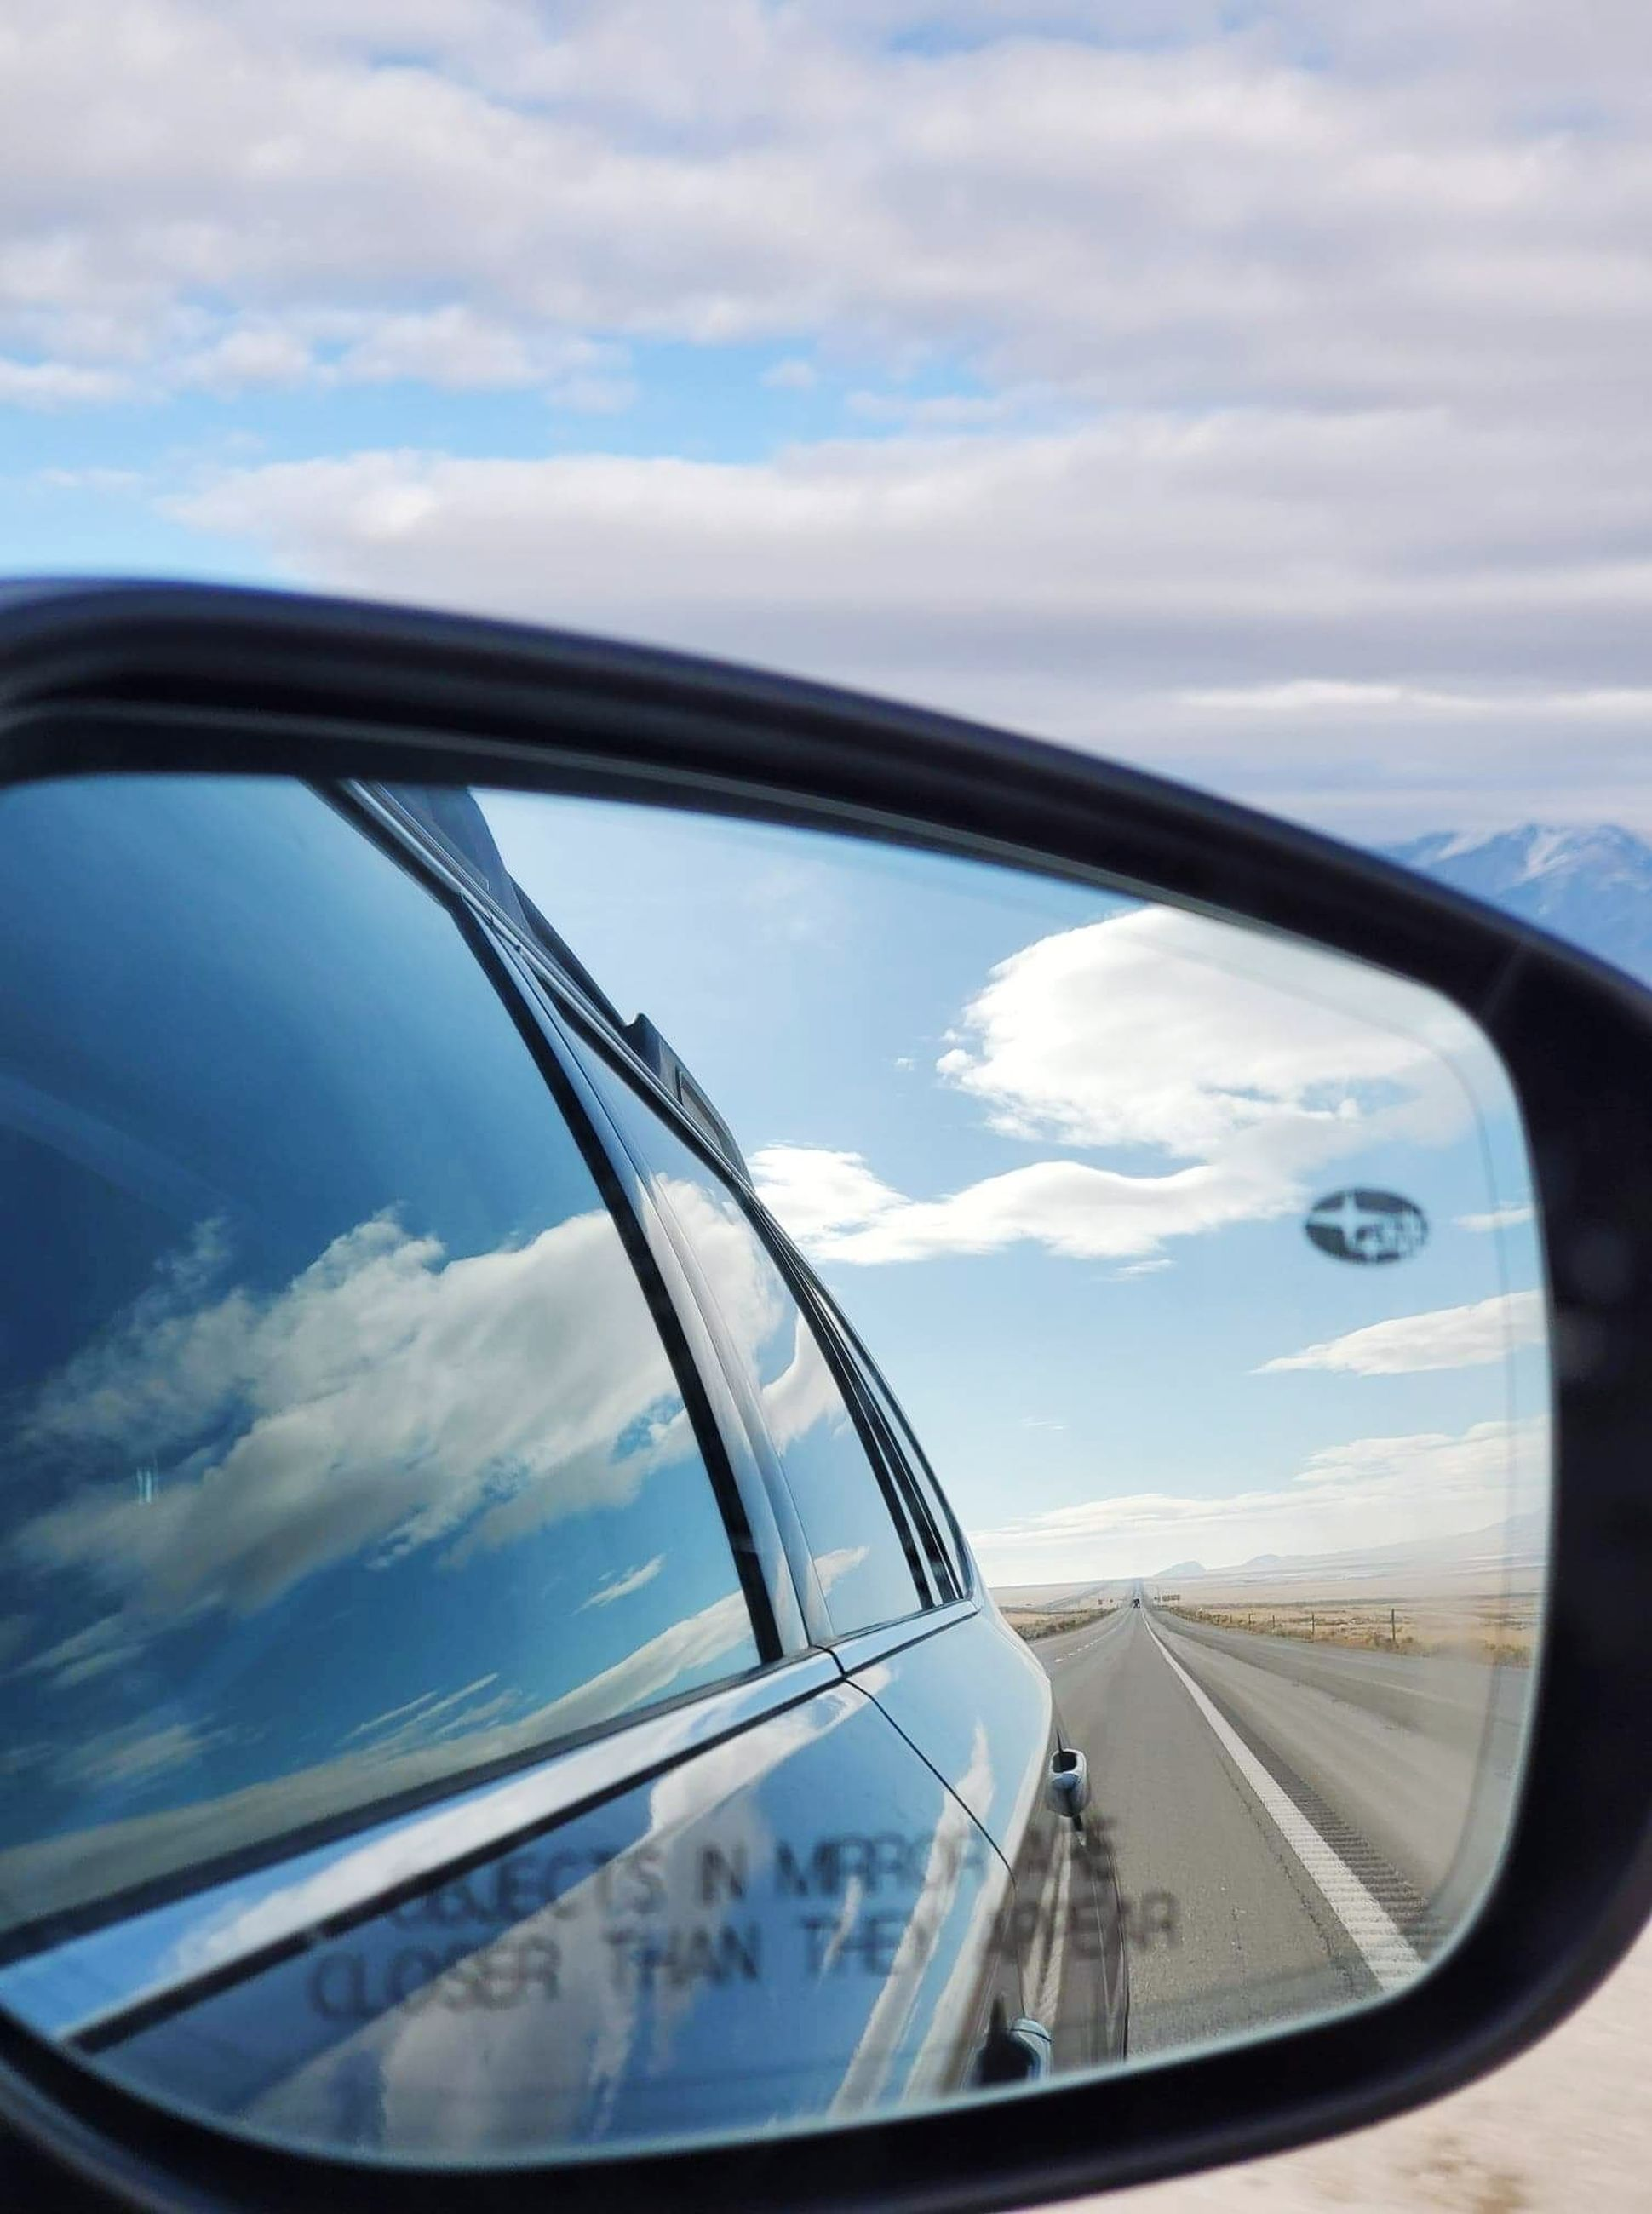 mode of transportation, motor vehicle, transportation, cloud - sky, sky, car, land vehicle, side-view mirror, reflection, no people, glass - material, nature, day, close-up, mirror, window, road, motion, vehicle mirror, outdoors, road trip